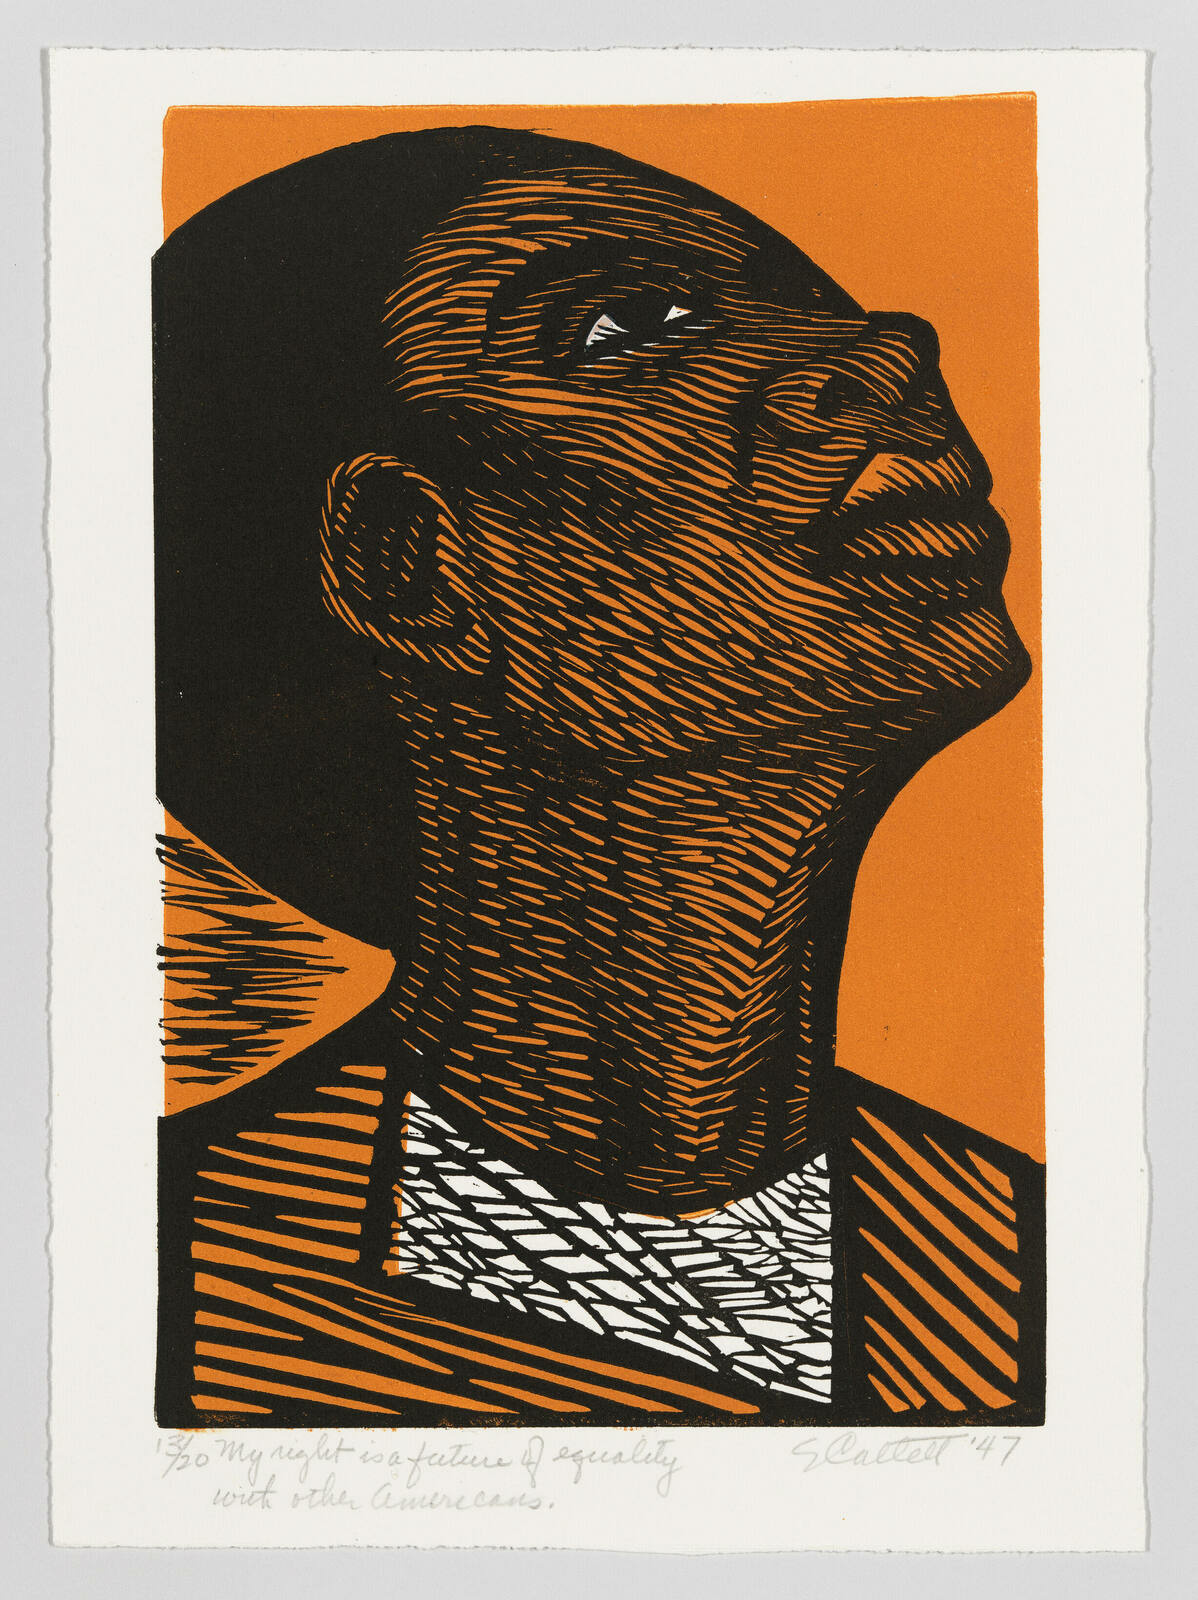 A Black woman cast in orange with raised head and eyes turned up.